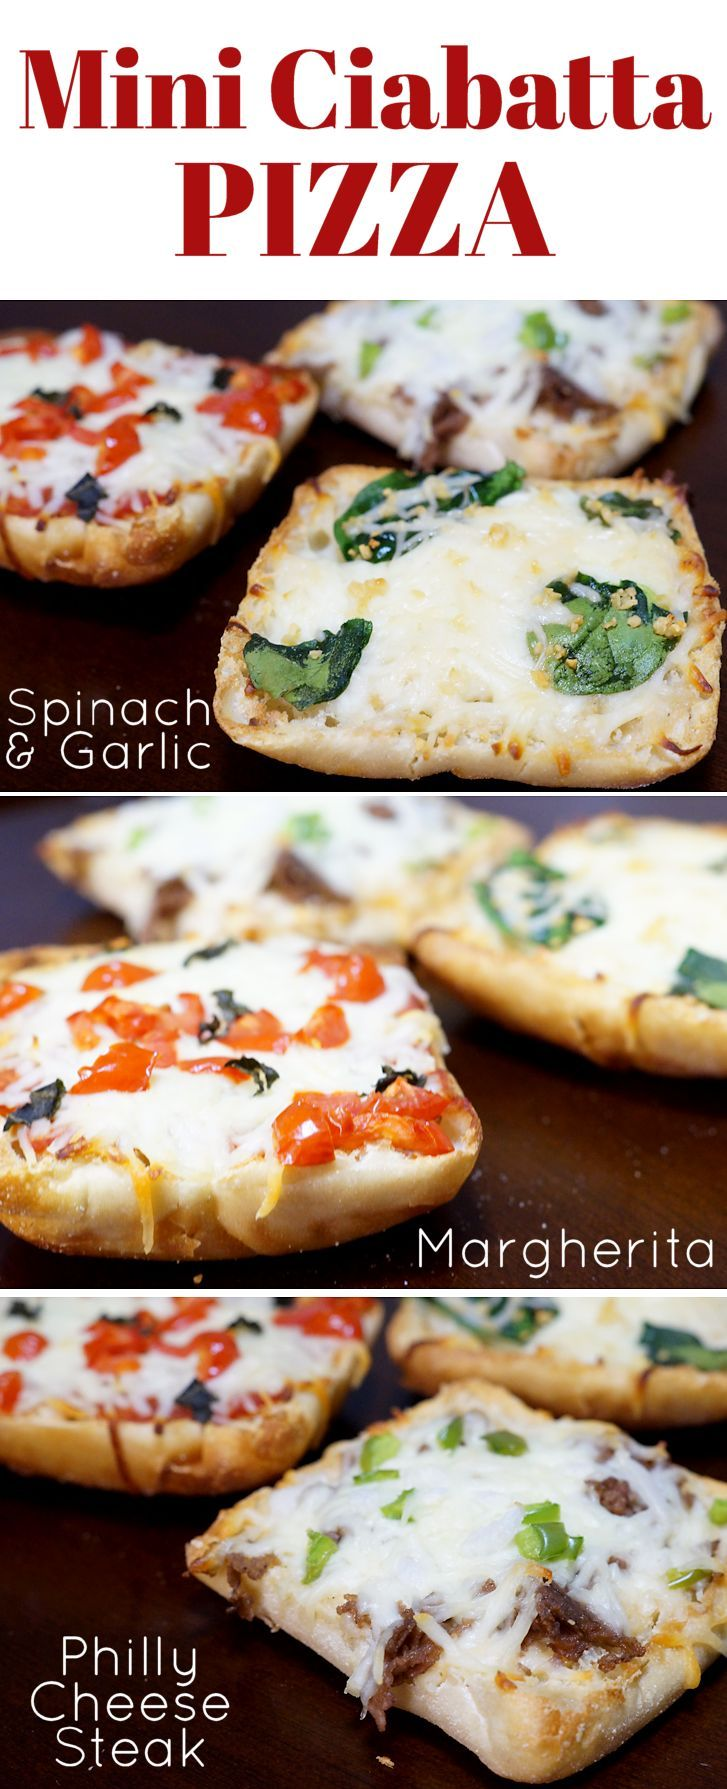 3 Mini Ciabatta Pizza Recipes for Game Day :: Margherita, Spinach & Garlic, Philly Cheese Steak